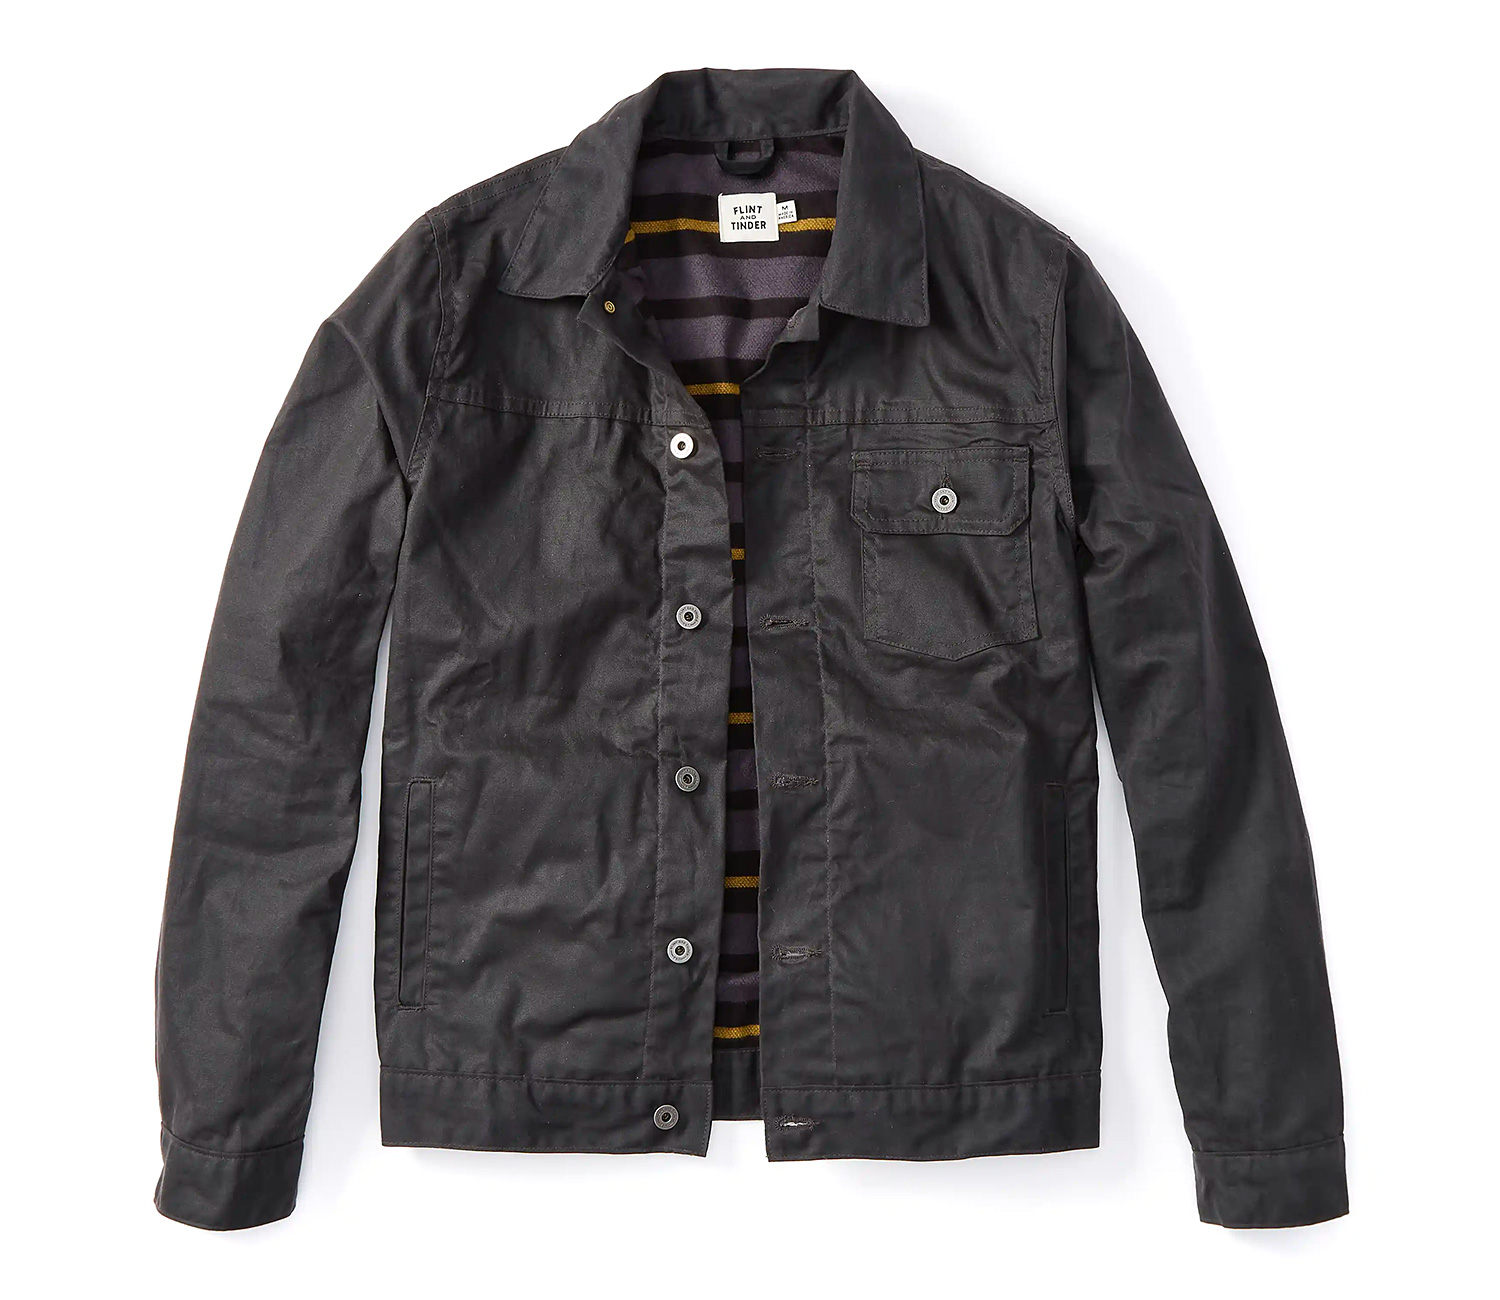 This Jean Jacket is Waxed for Winter at werd.com